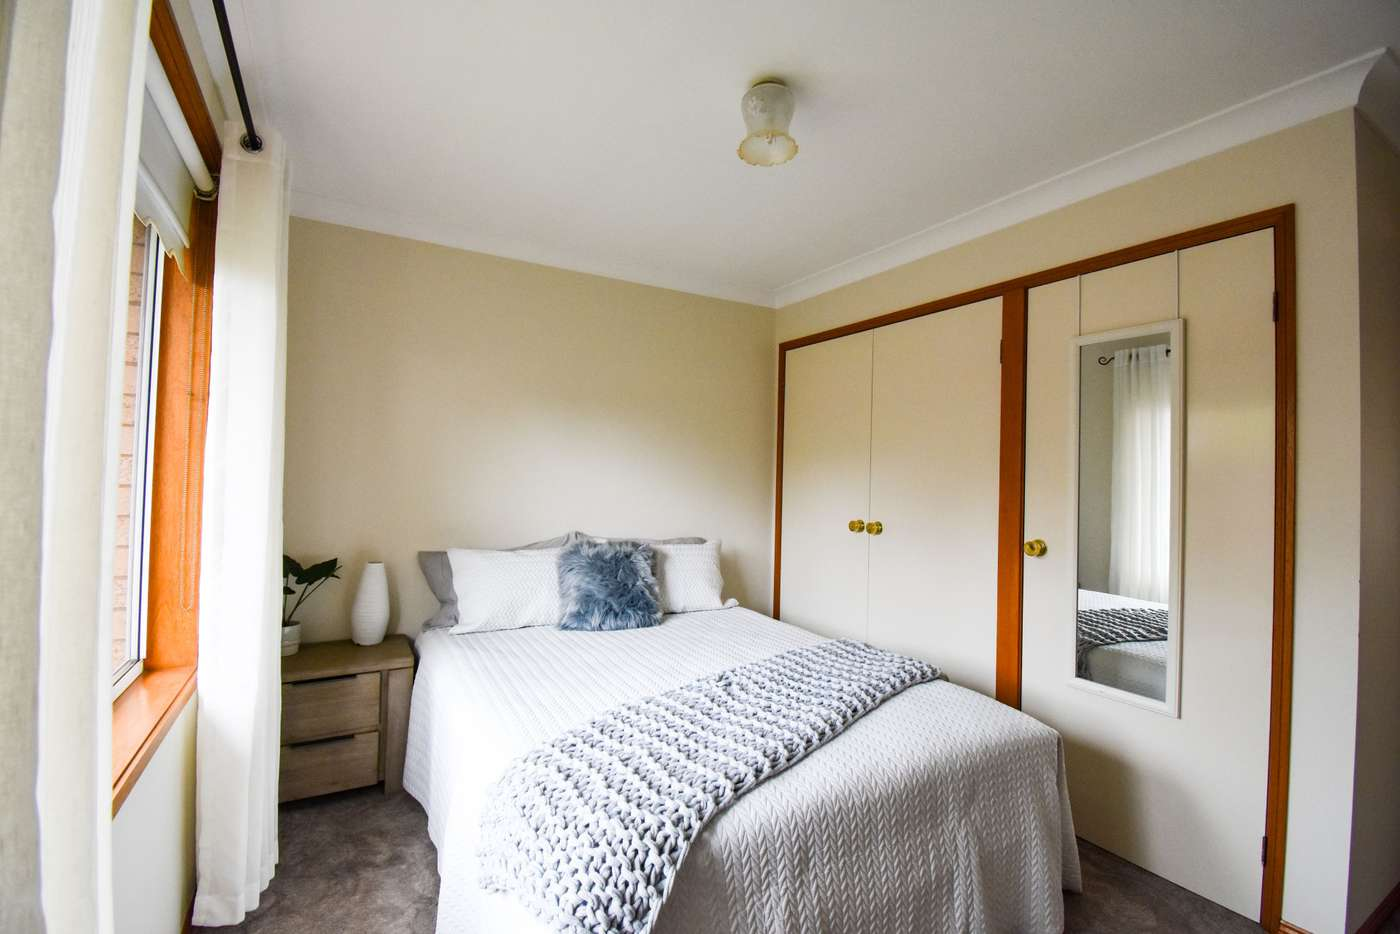 Seventh view of Homely unit listing, 6/196 Piper Steet, Bathurst NSW 2795